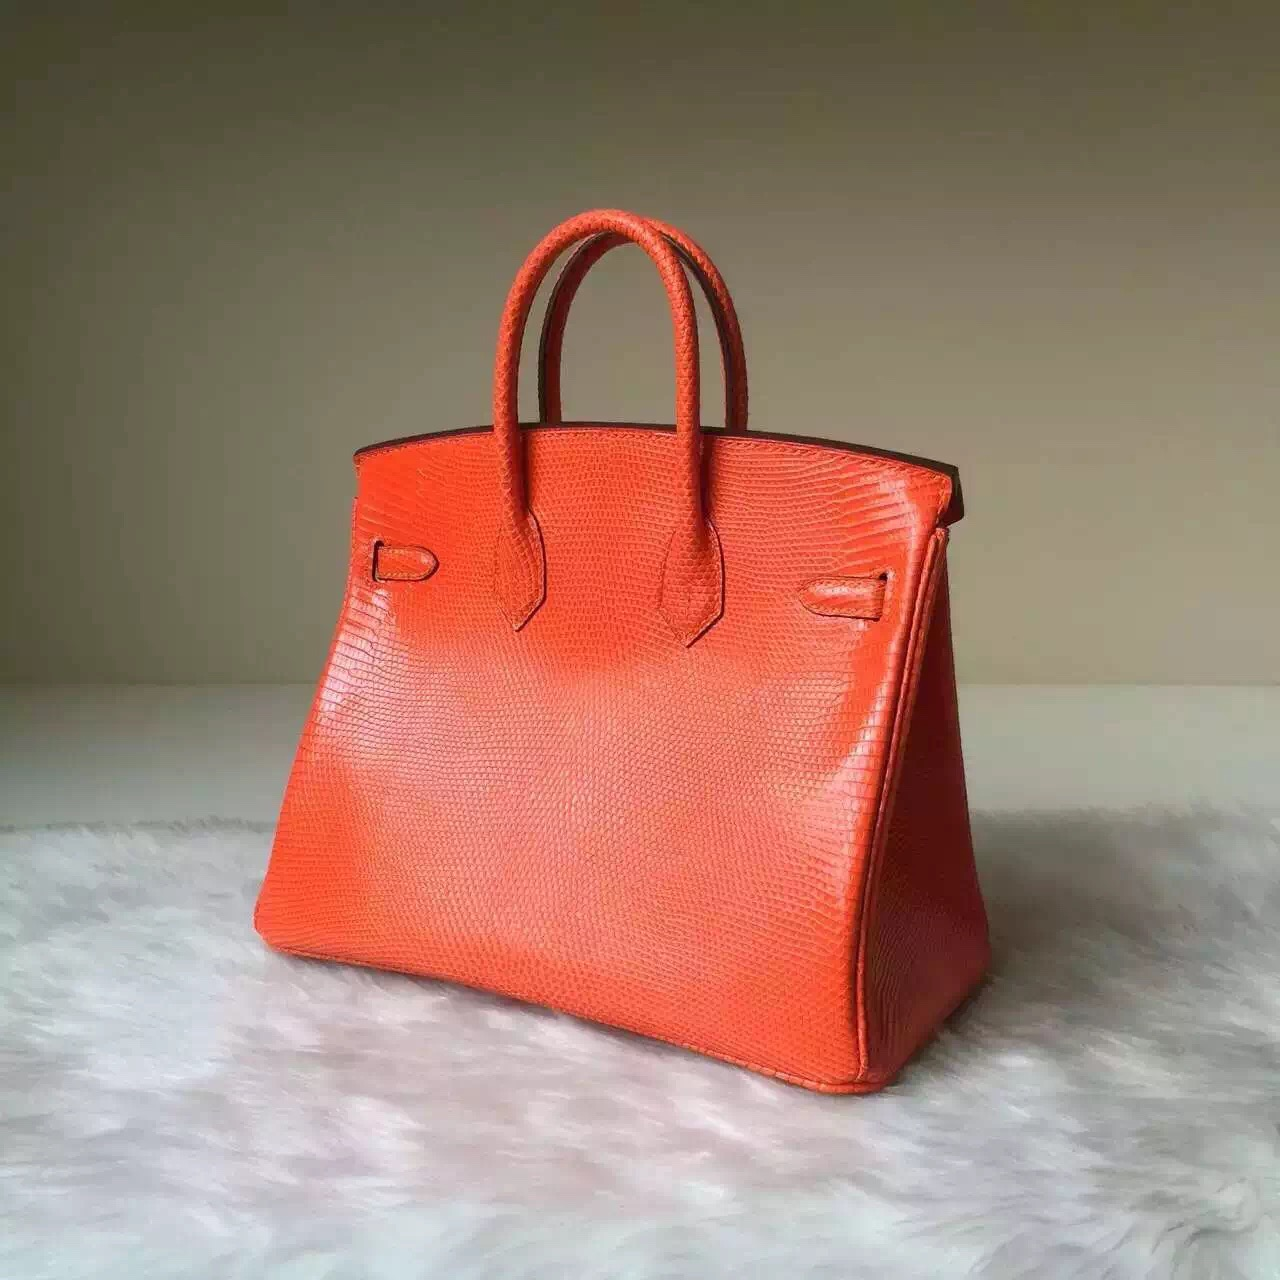 Sale Hermes Bag Orange Lizard Leather Birkin25CM Silver Hardware